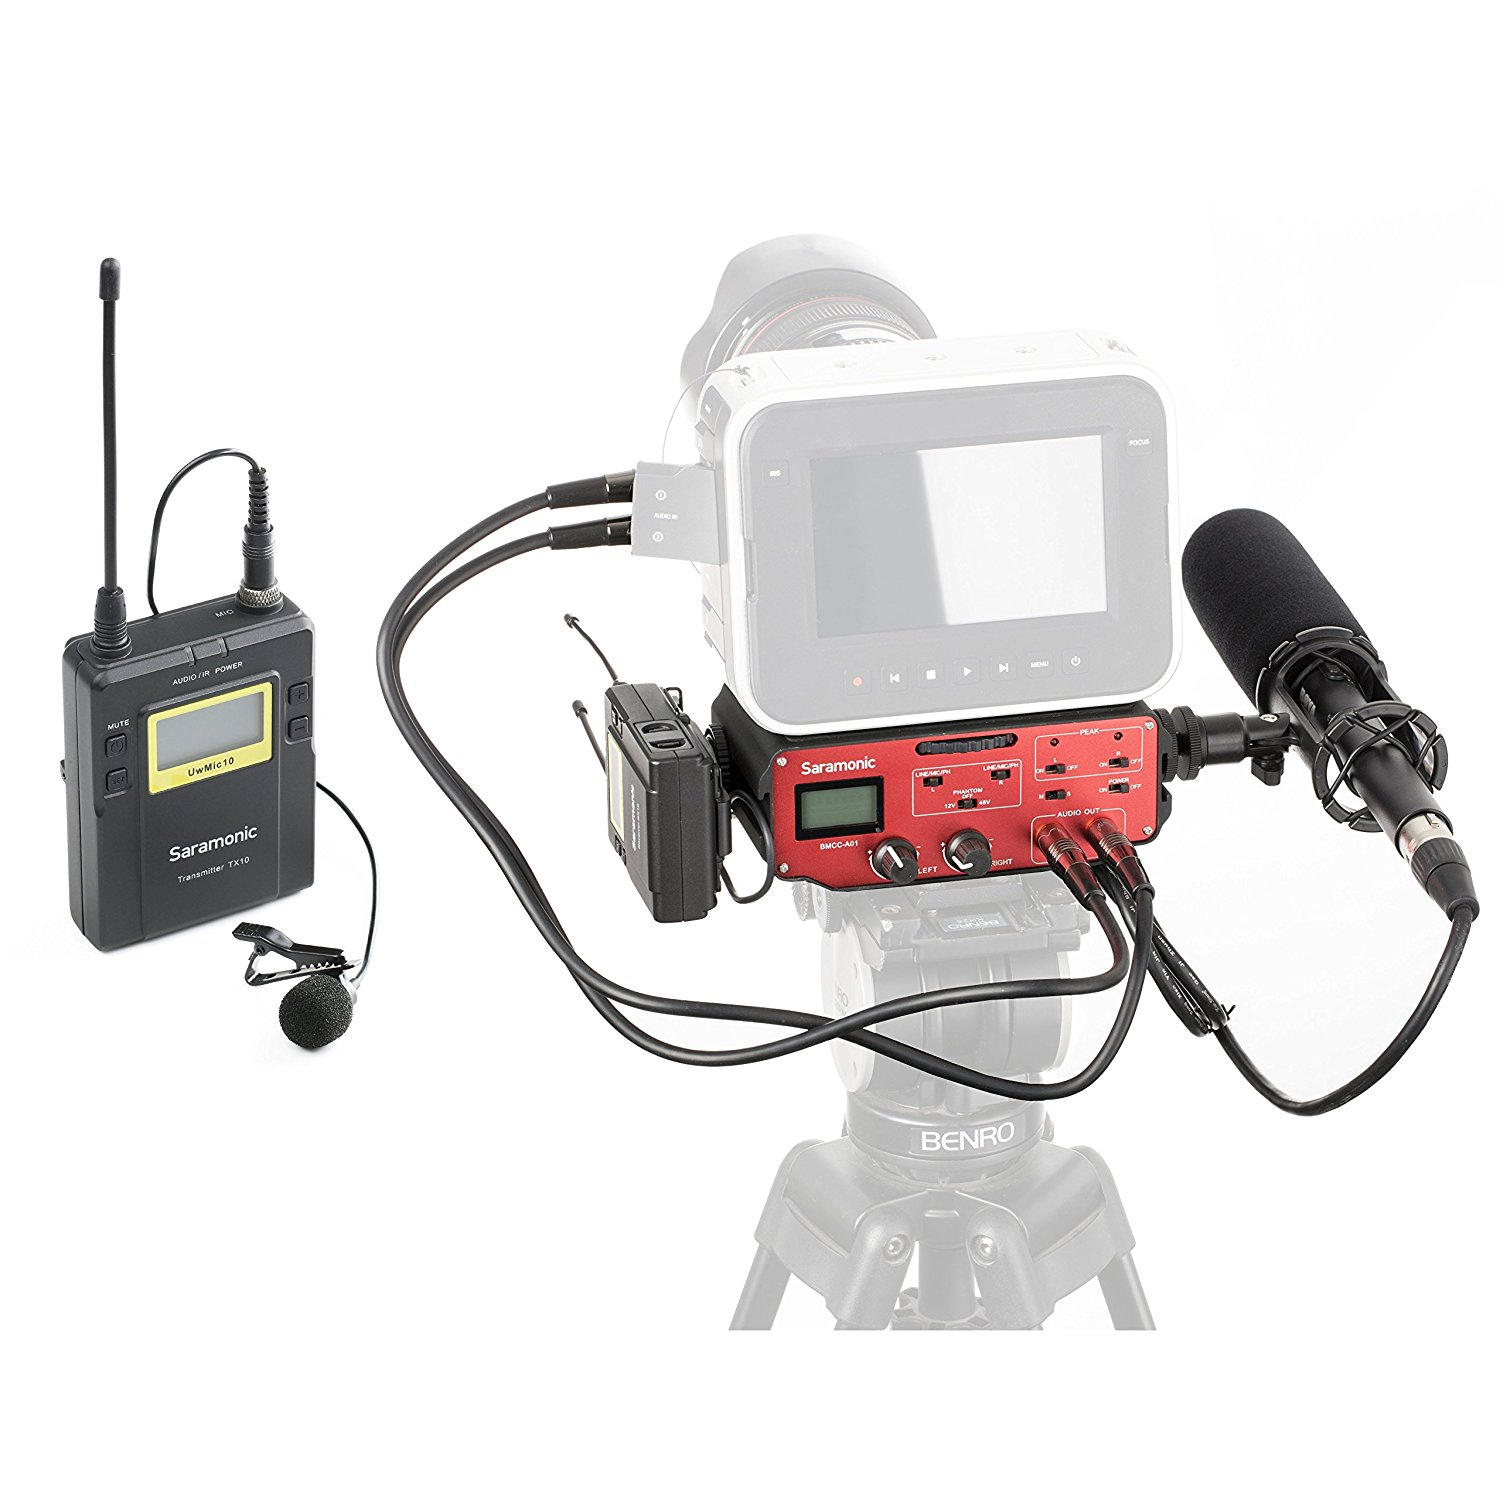 Saramonic BMCC Audio Kit: Shotgun Microphone, UHF Wireless Lavalier & 2-CH Mixer by Movo